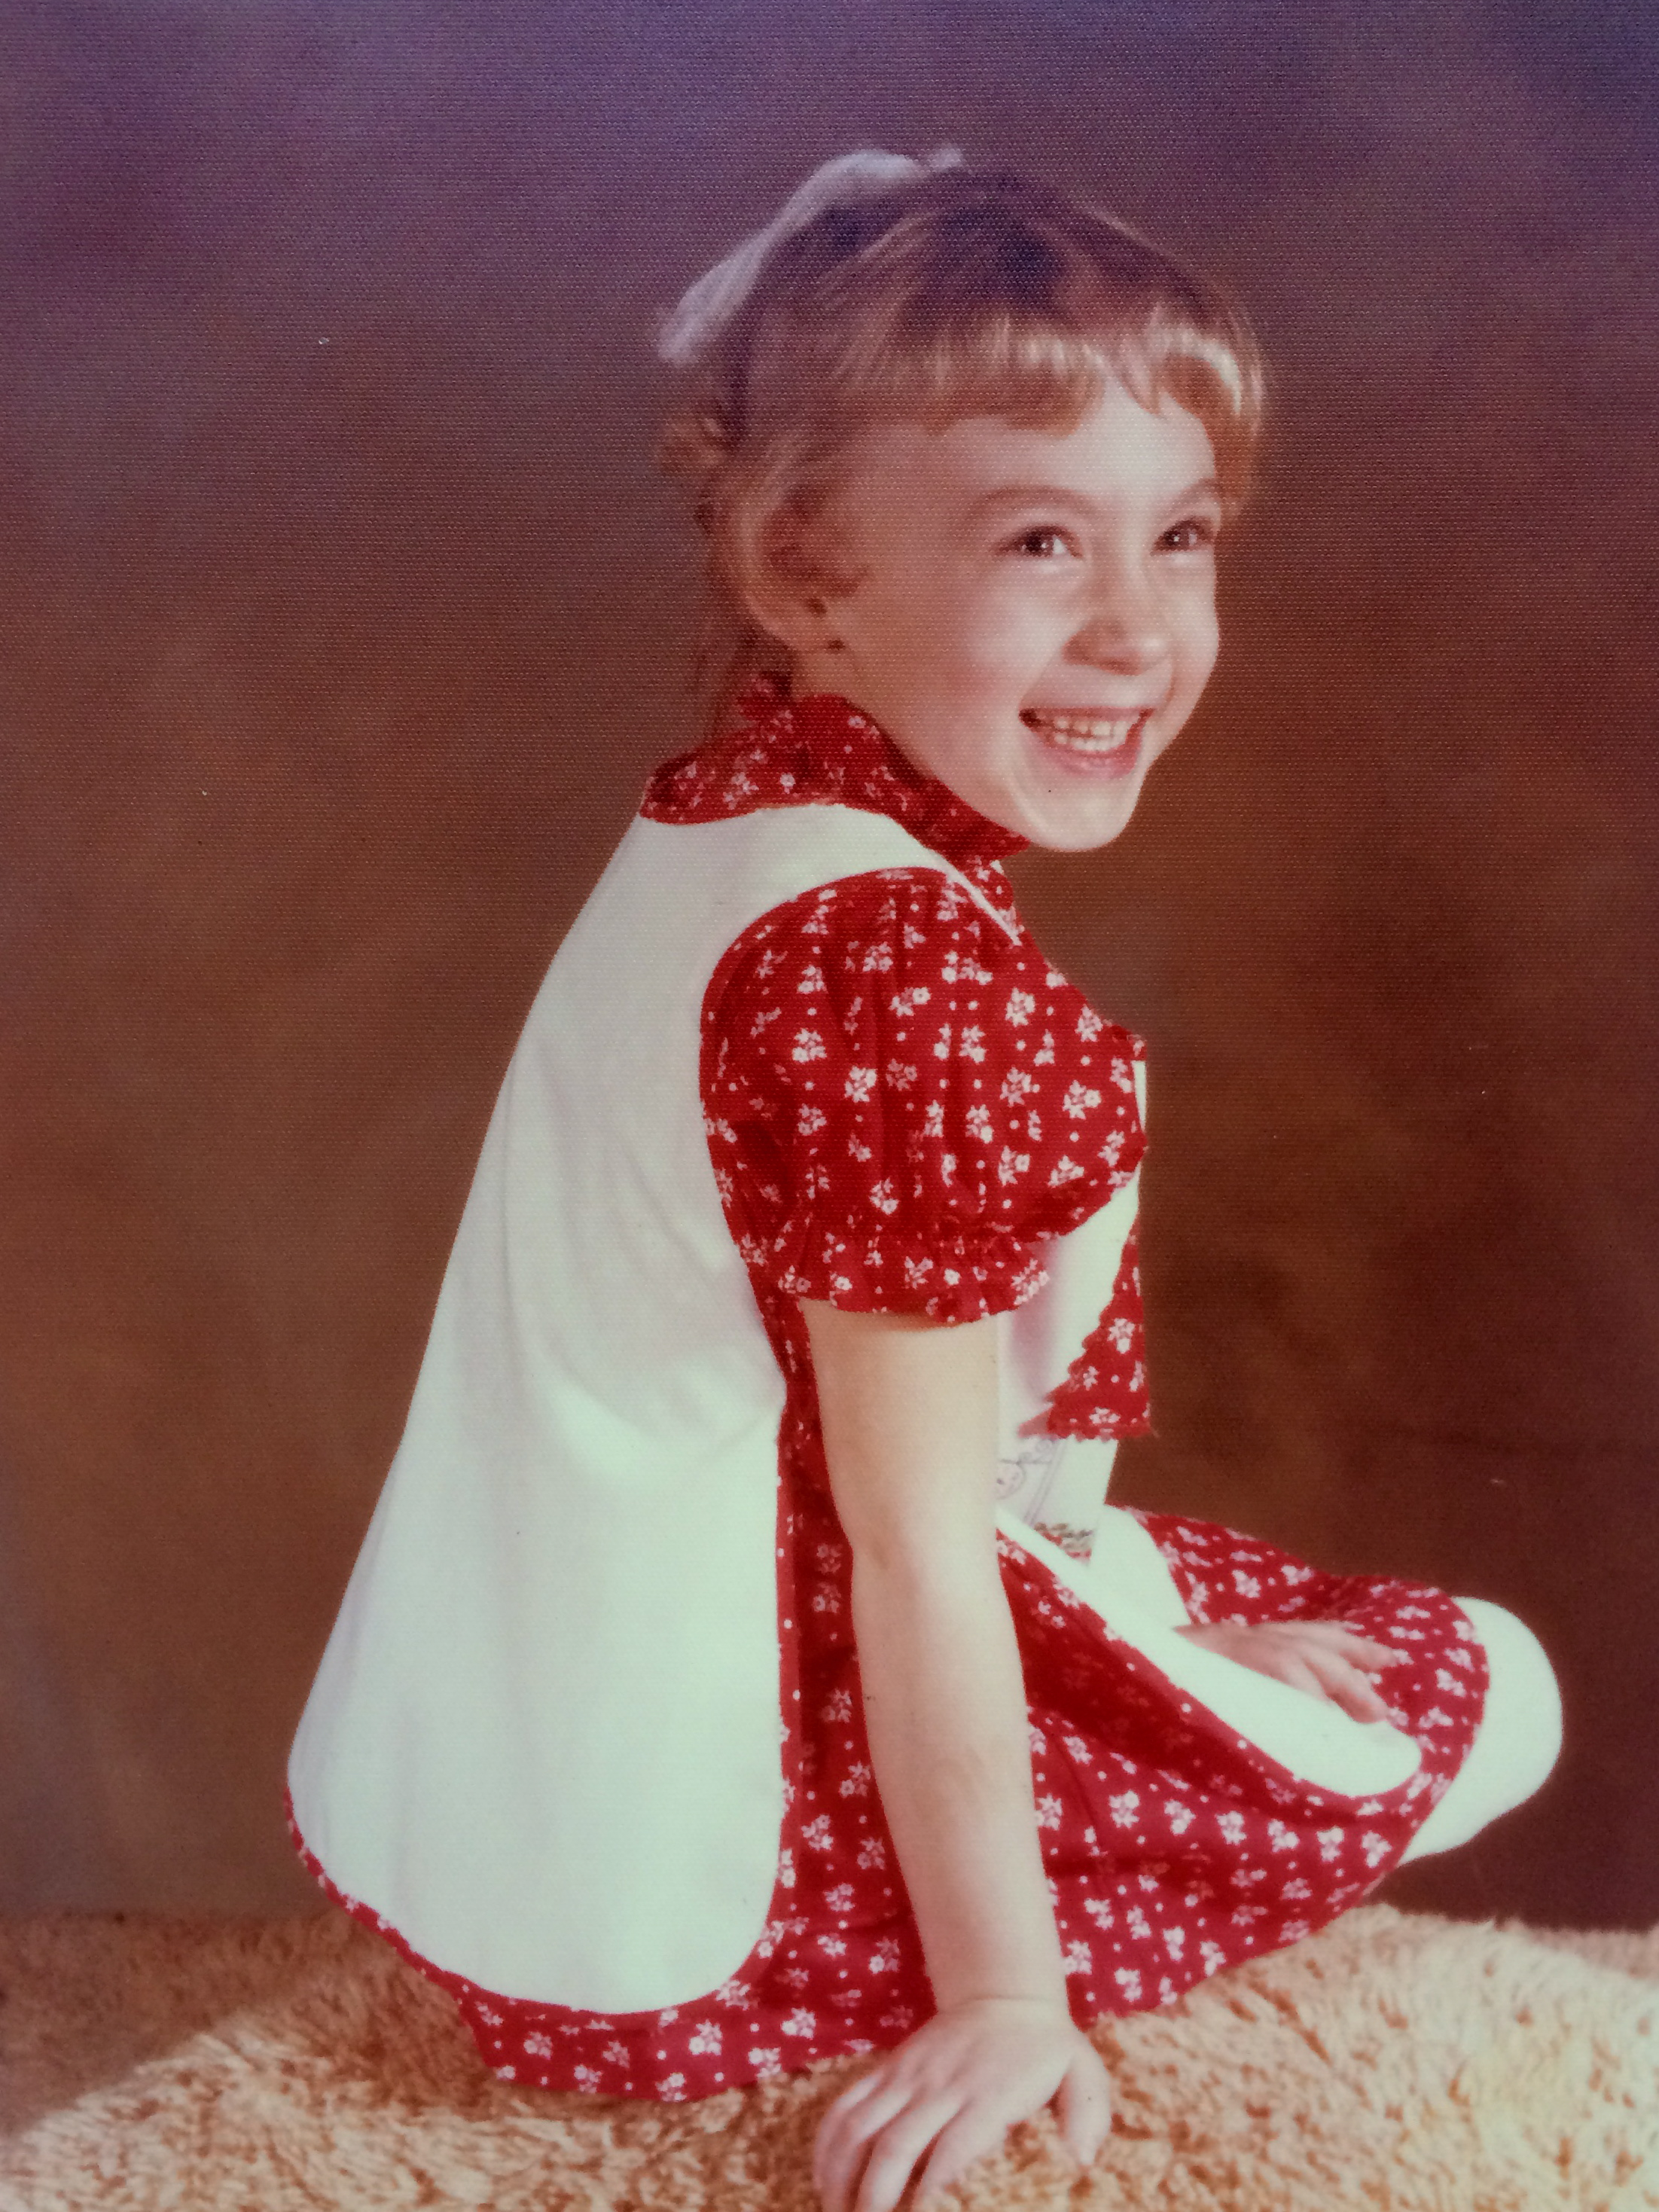 Jen Gresham - Yes, that's actually me in preschool.